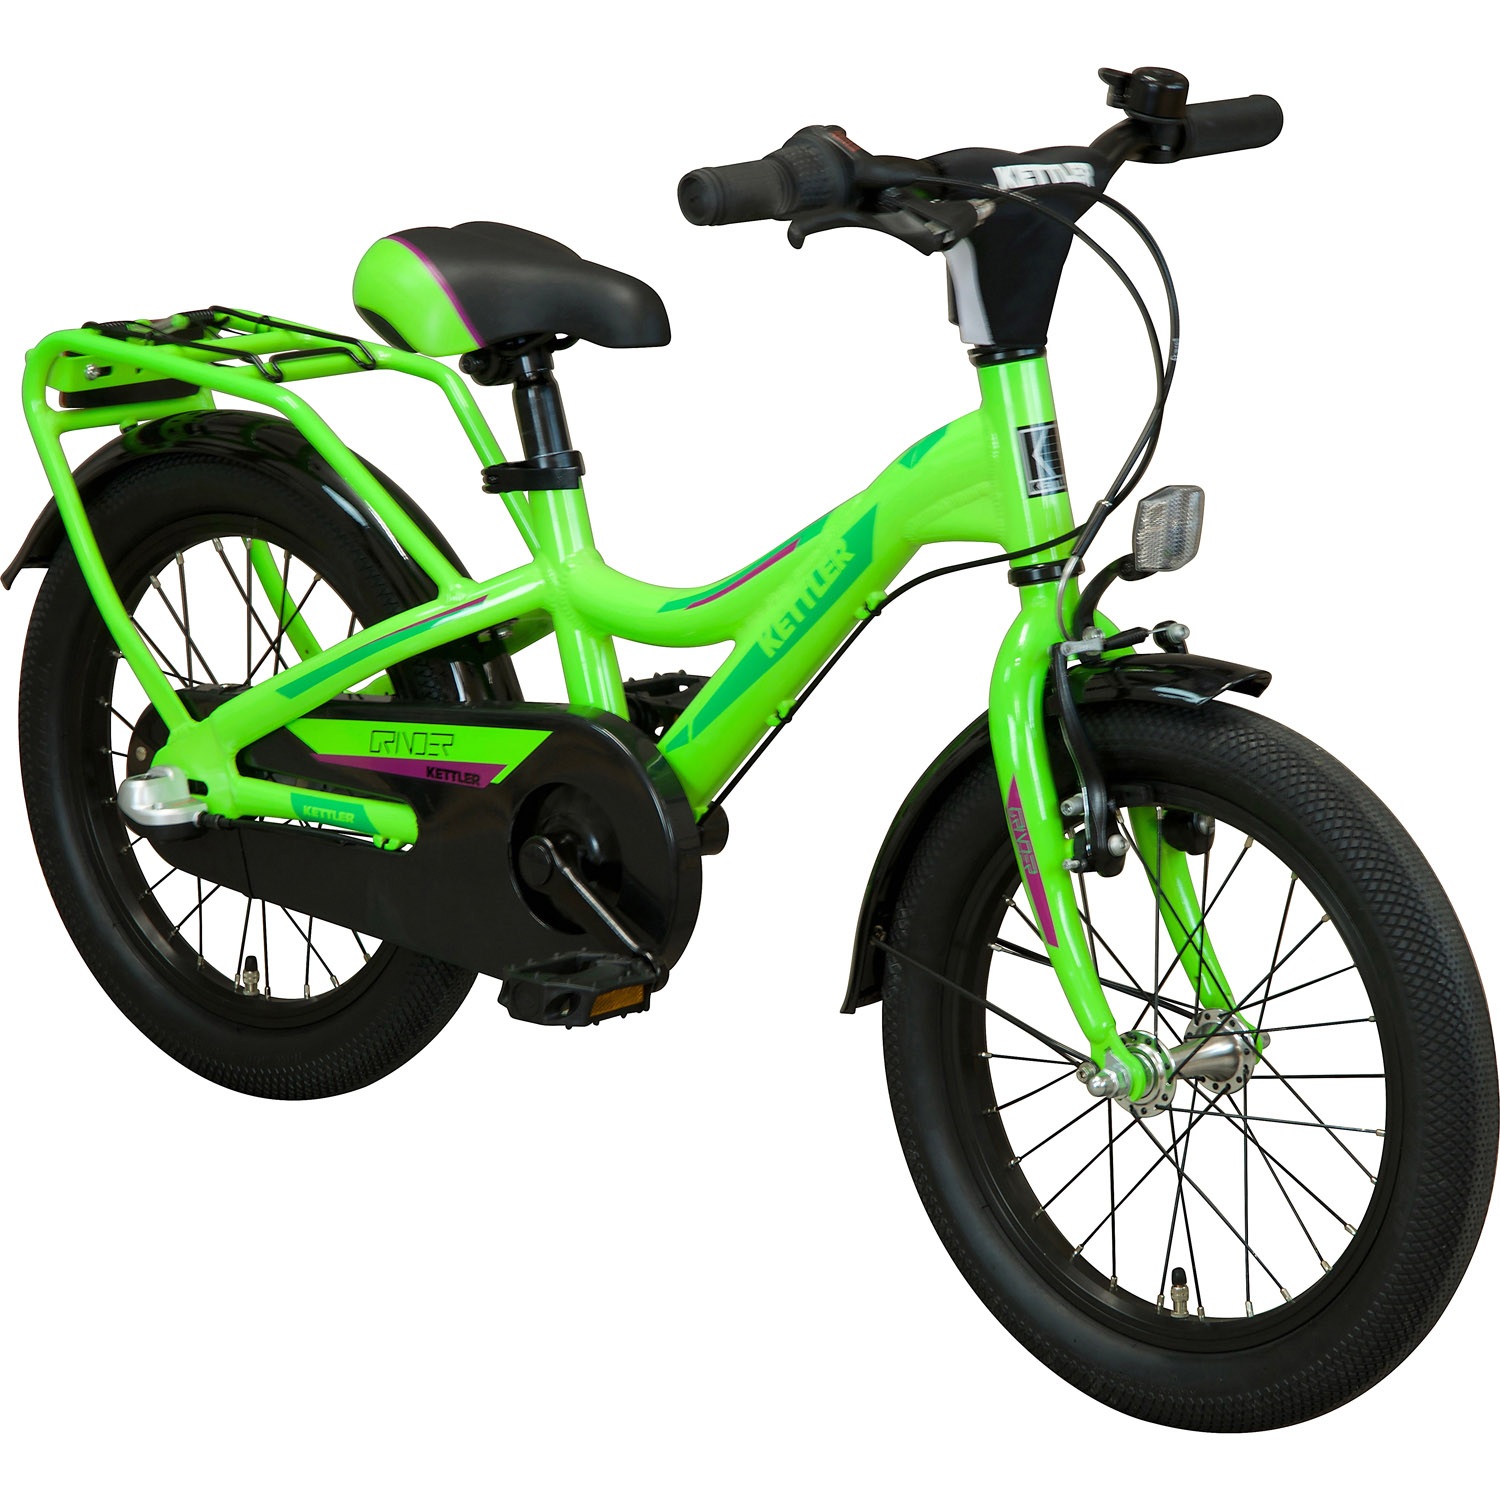 kettler grinder kinderfahrrad 16 zoll light green online shop zweirad stadler. Black Bedroom Furniture Sets. Home Design Ideas